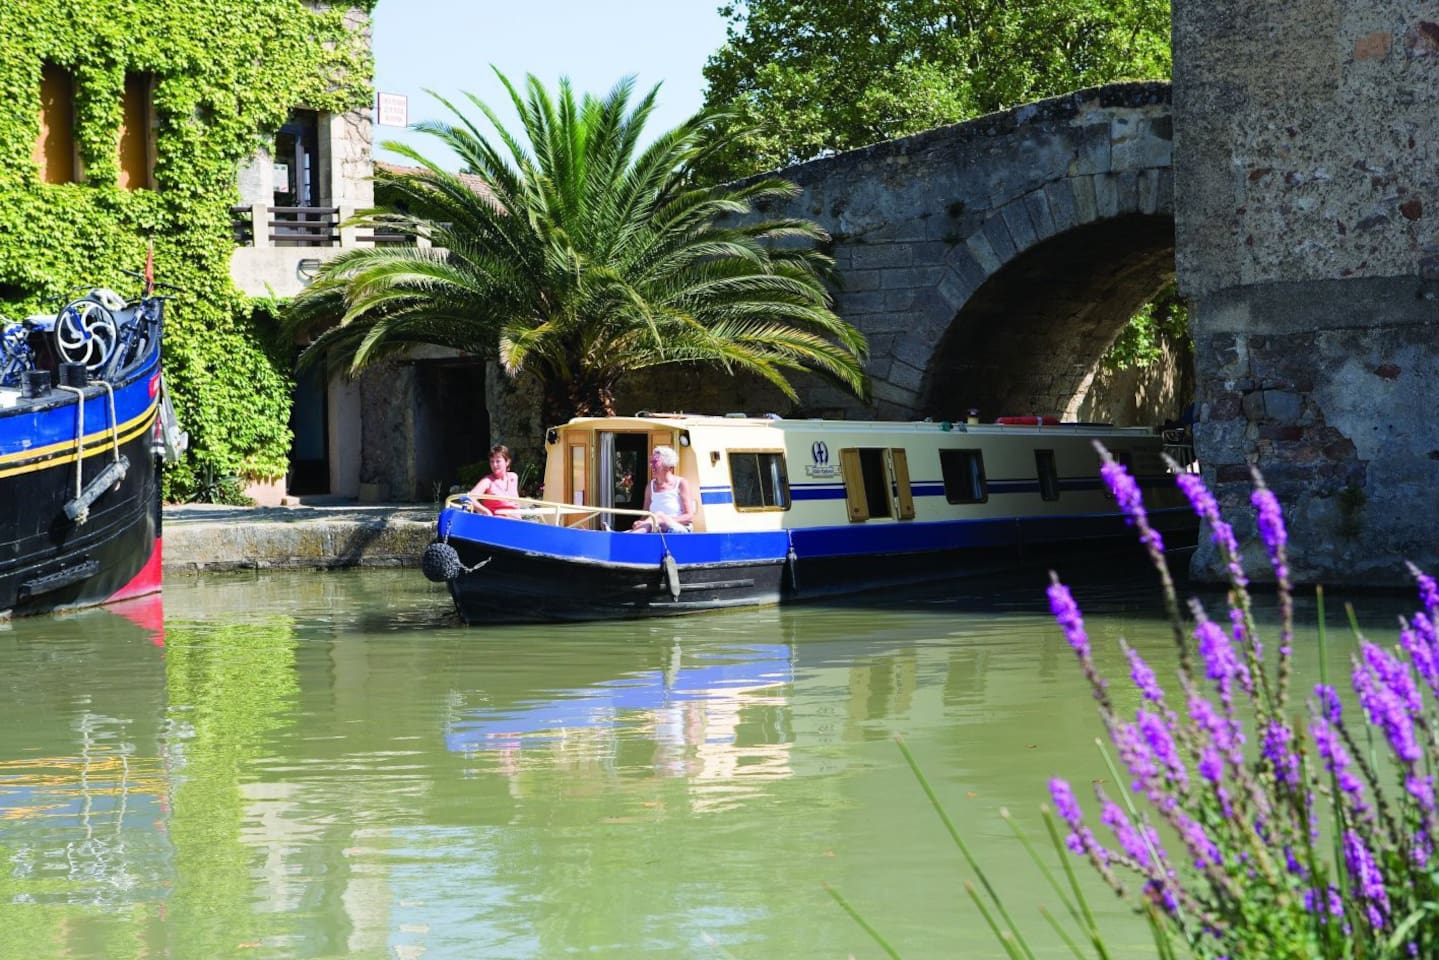 Our English Narrowboat passing under the bridge in Le Somail